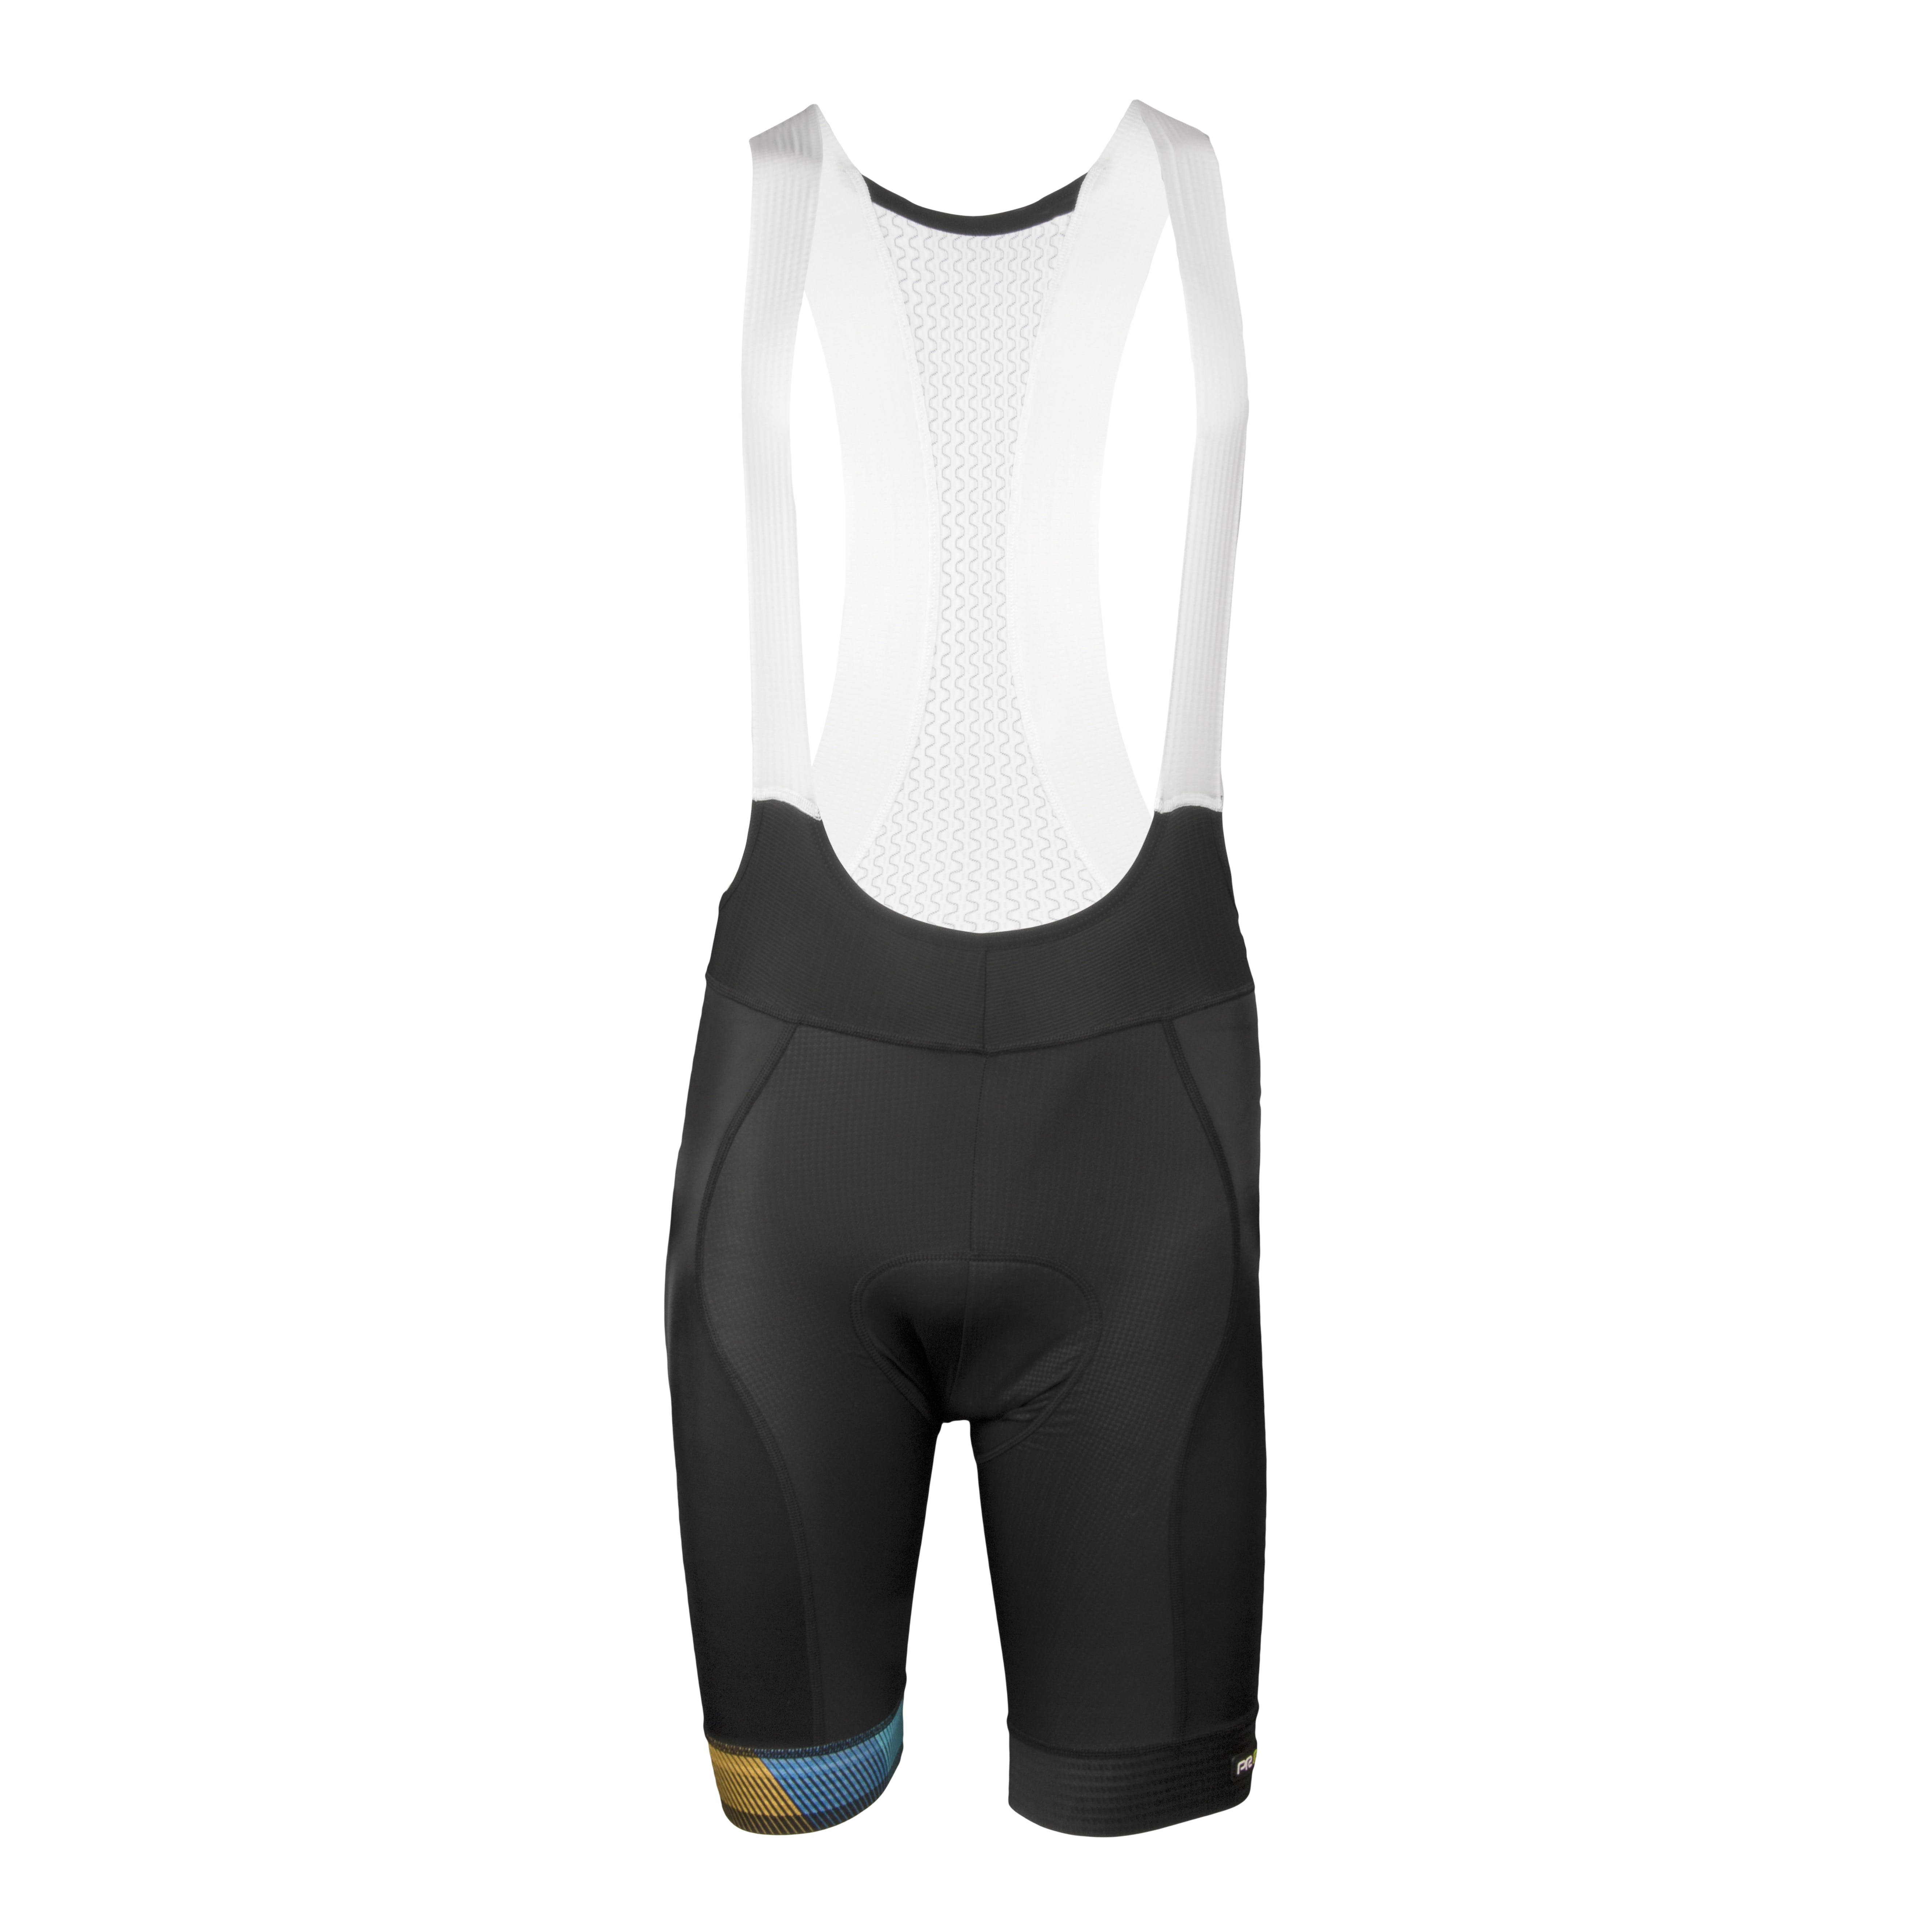 Chroma Bib Shorts